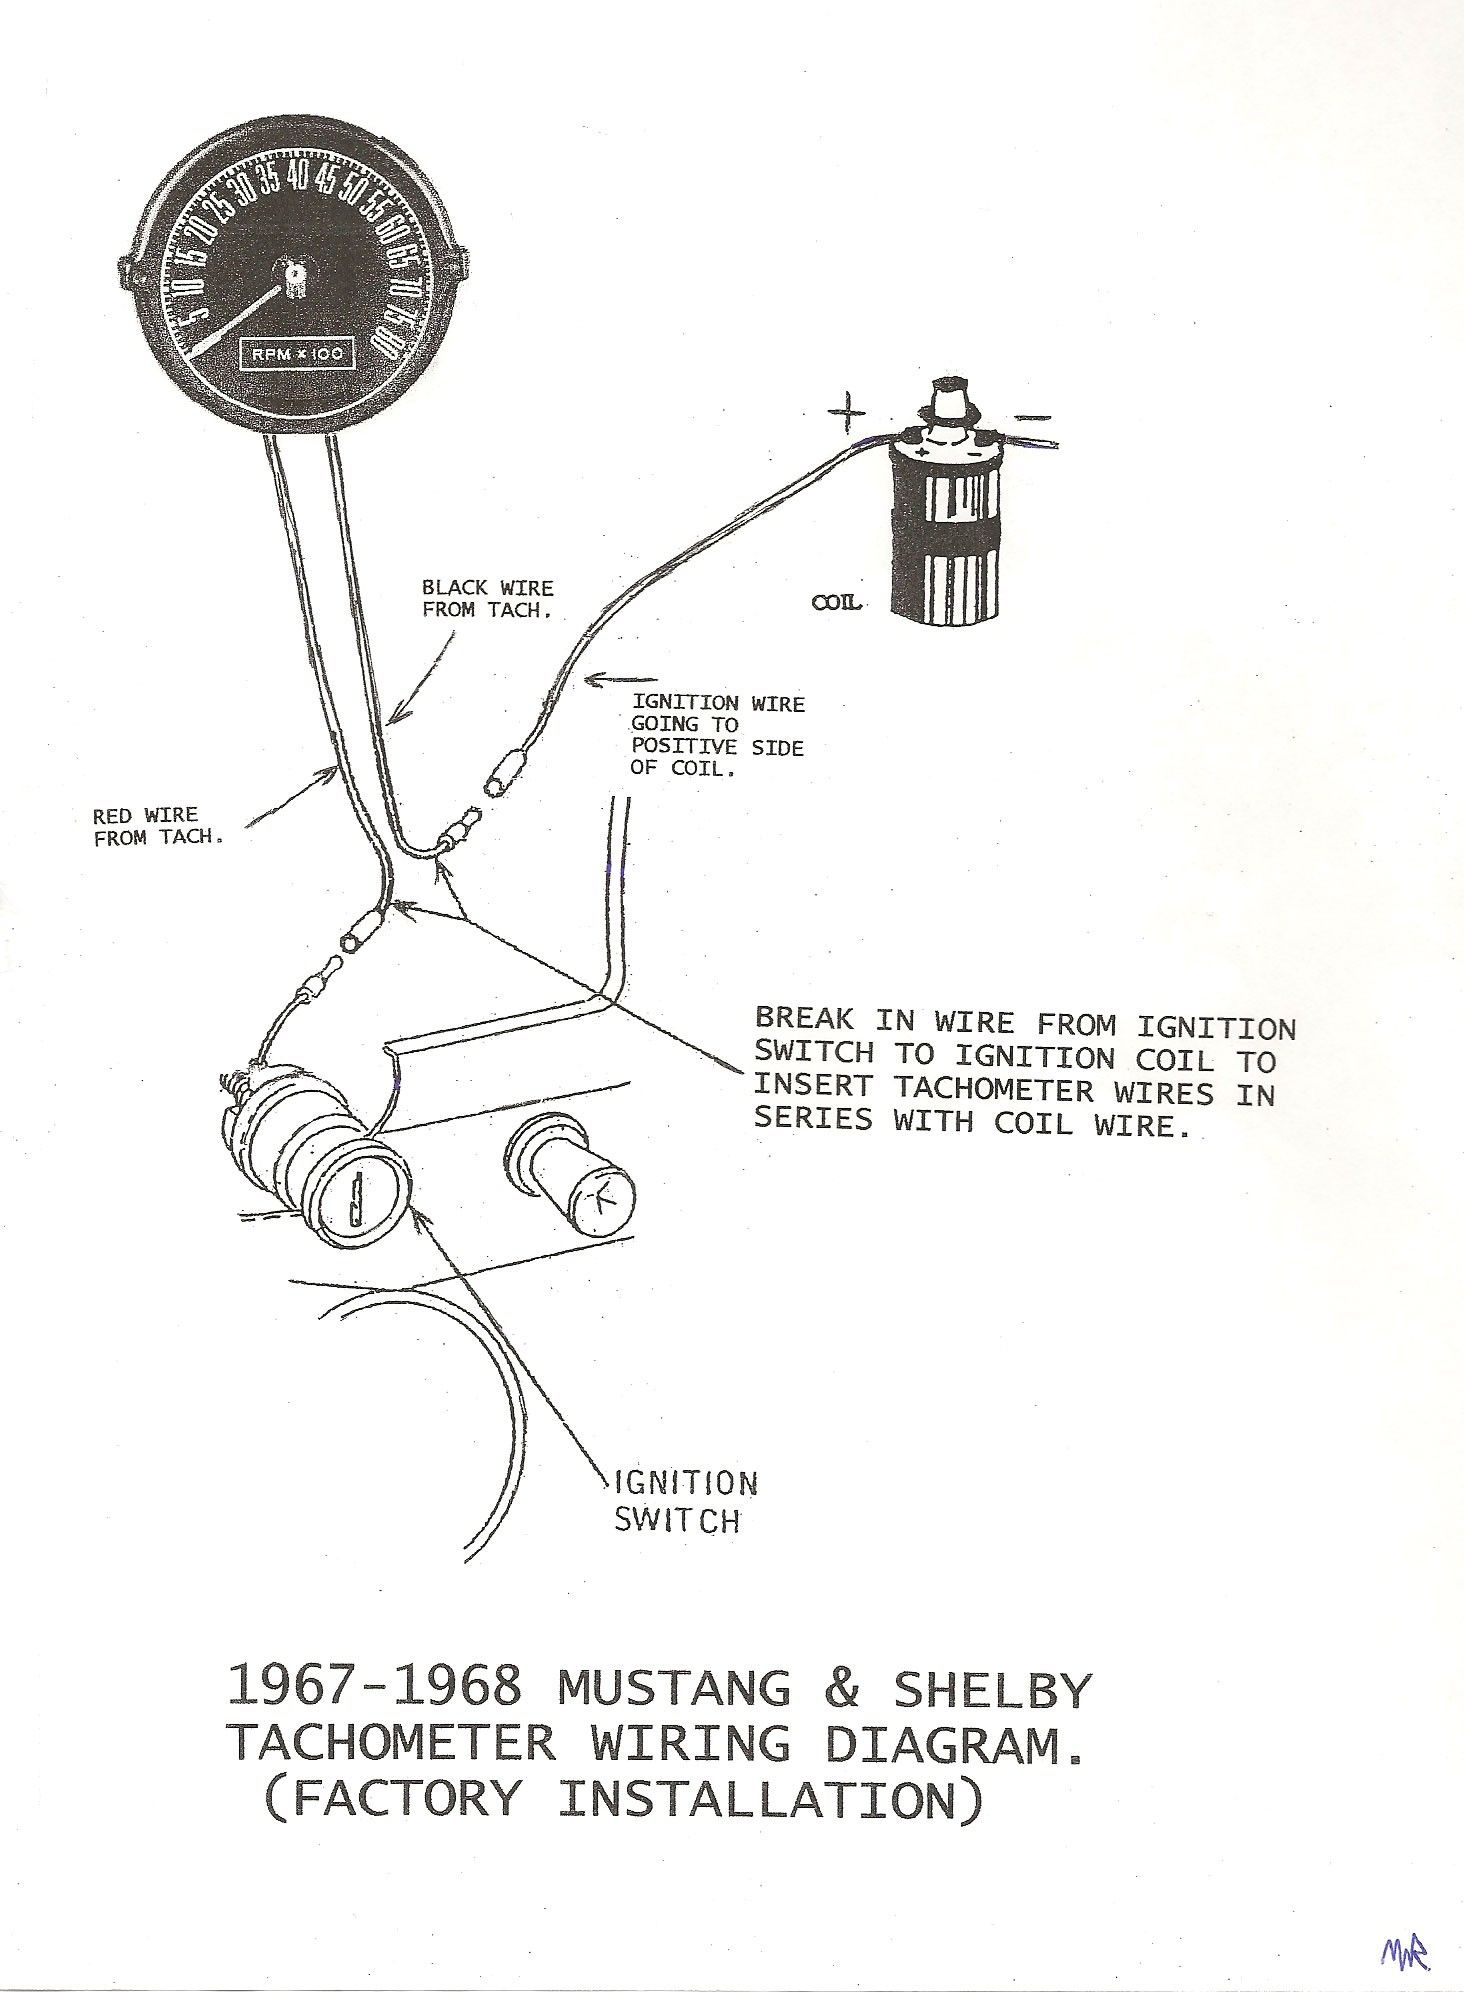 1968 mustang factory tach wiring wiring diagram paper 68 mustang tach install 1968 mustang tach wiring [ 1464 x 1992 Pixel ]